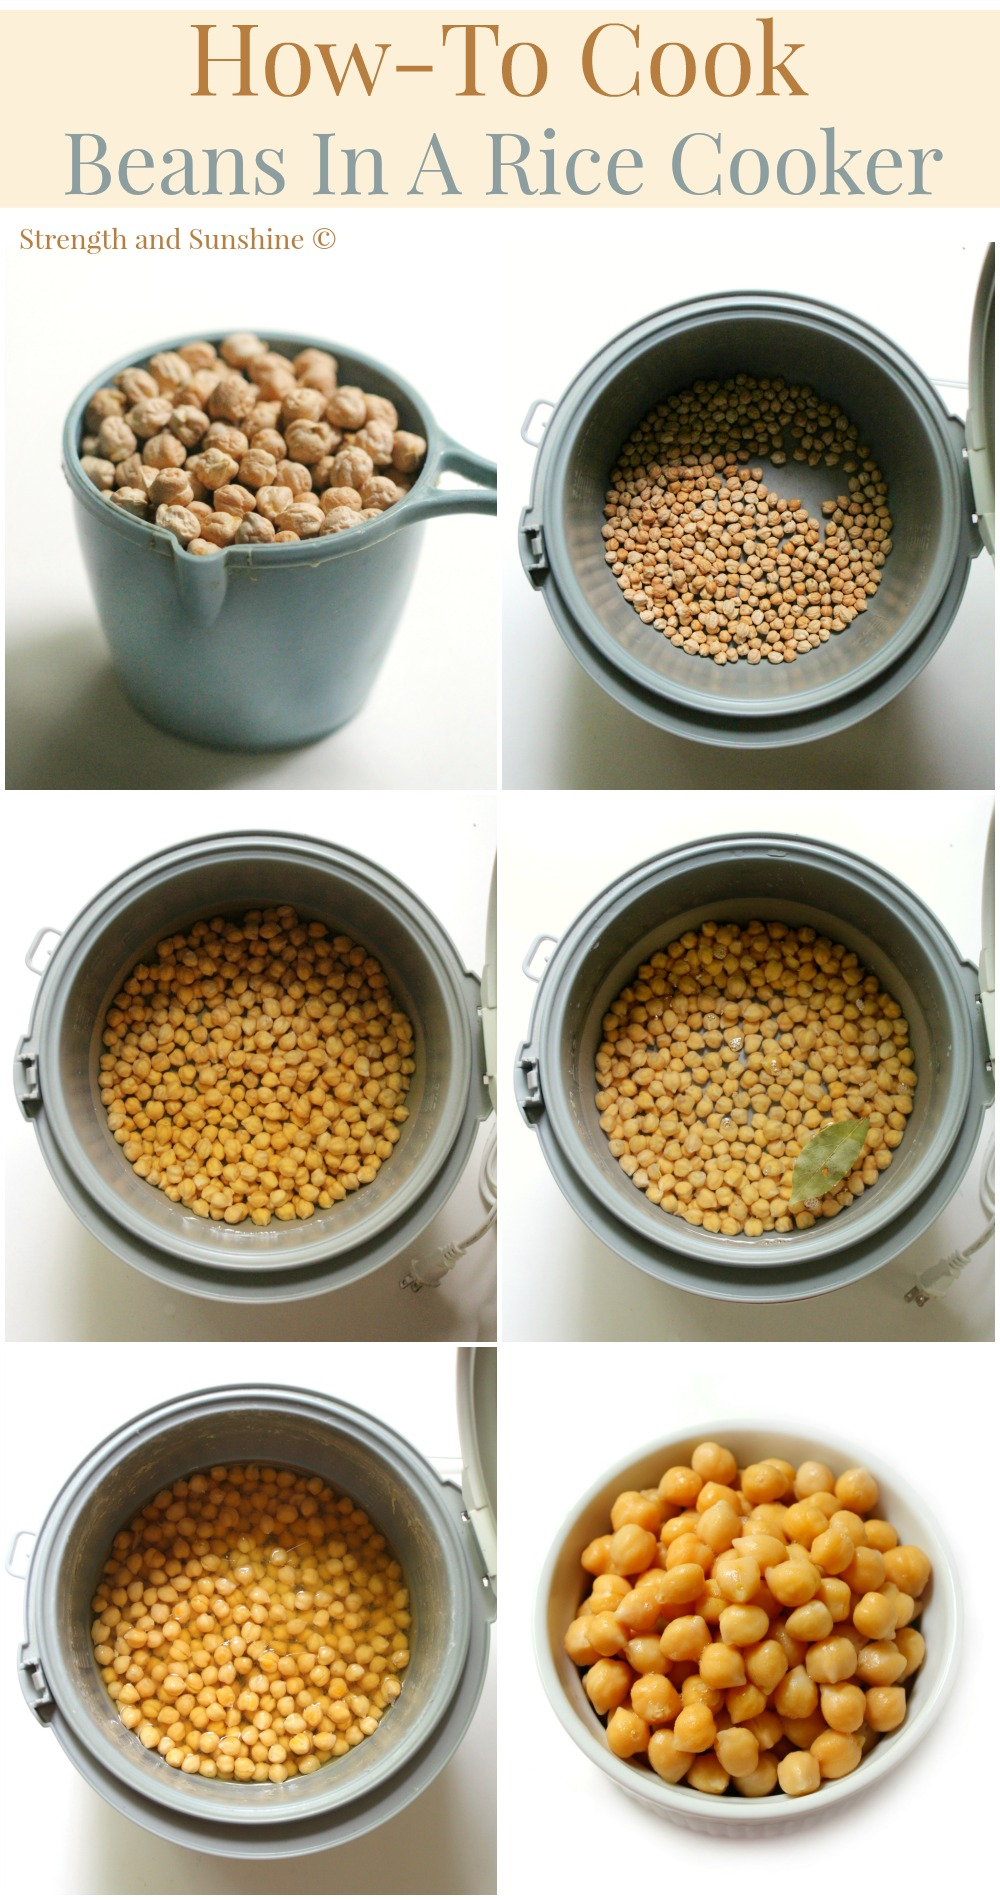 How To Cook Beans In A Rice Cooker Tiger Wiring Diagram